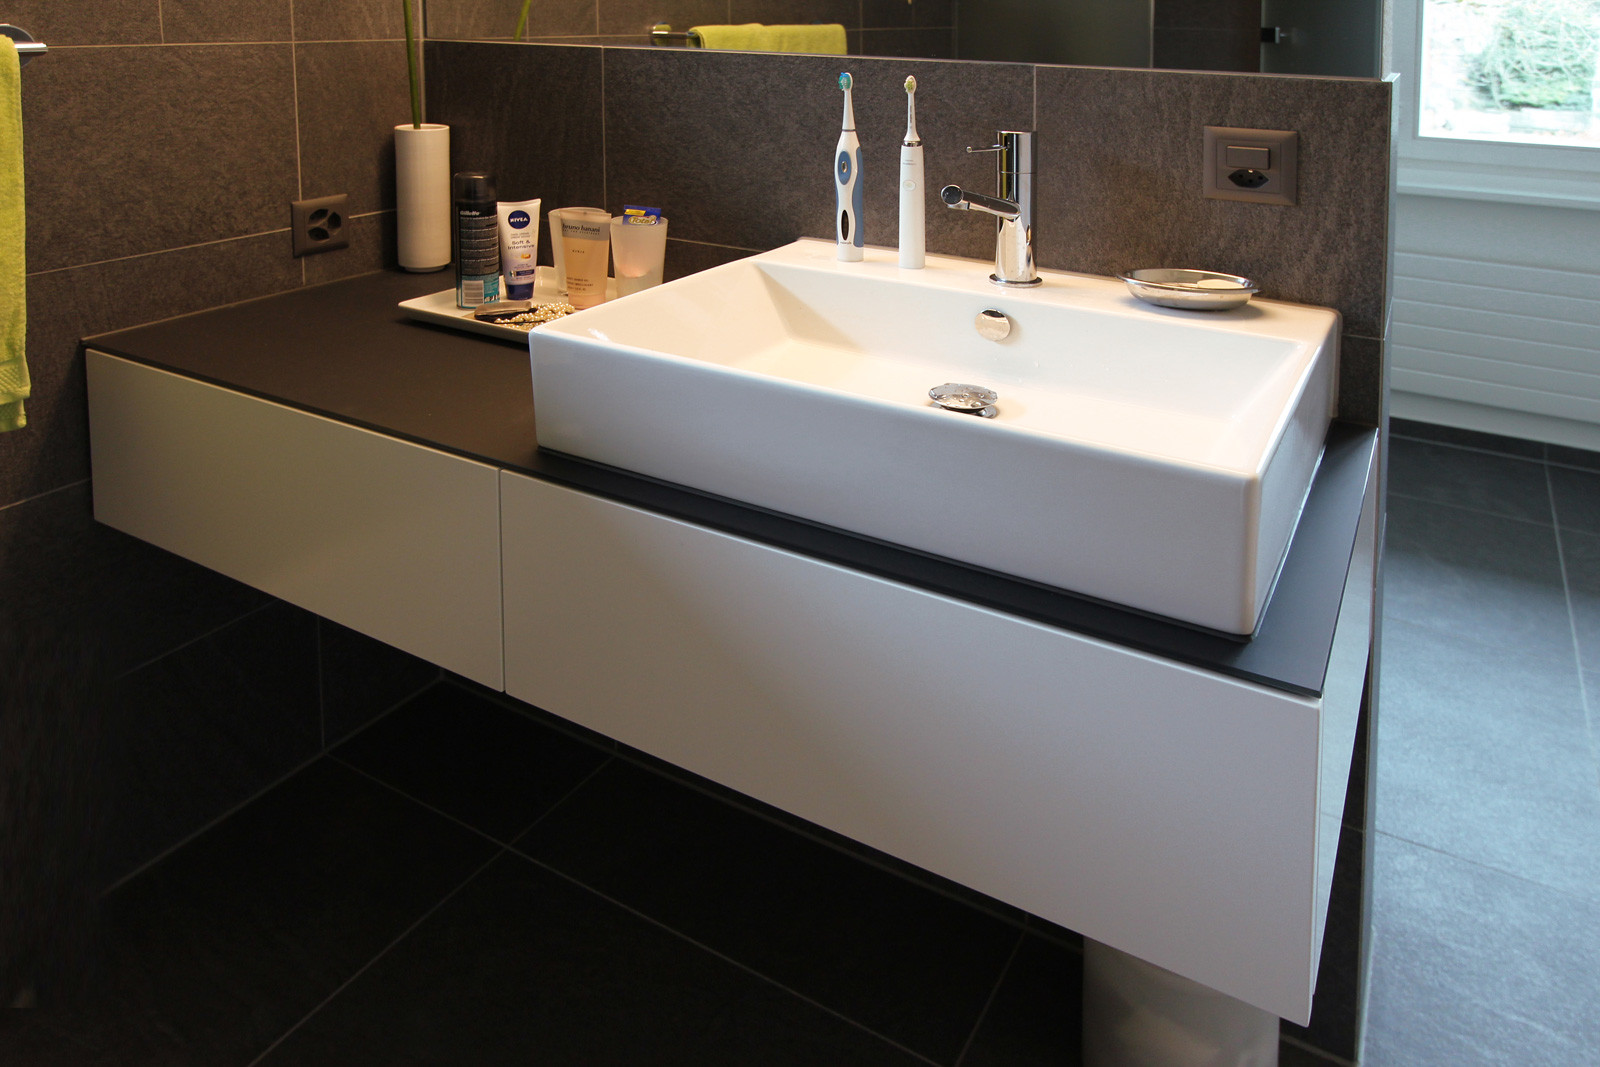 Washbasin vanity unit in private apartment.